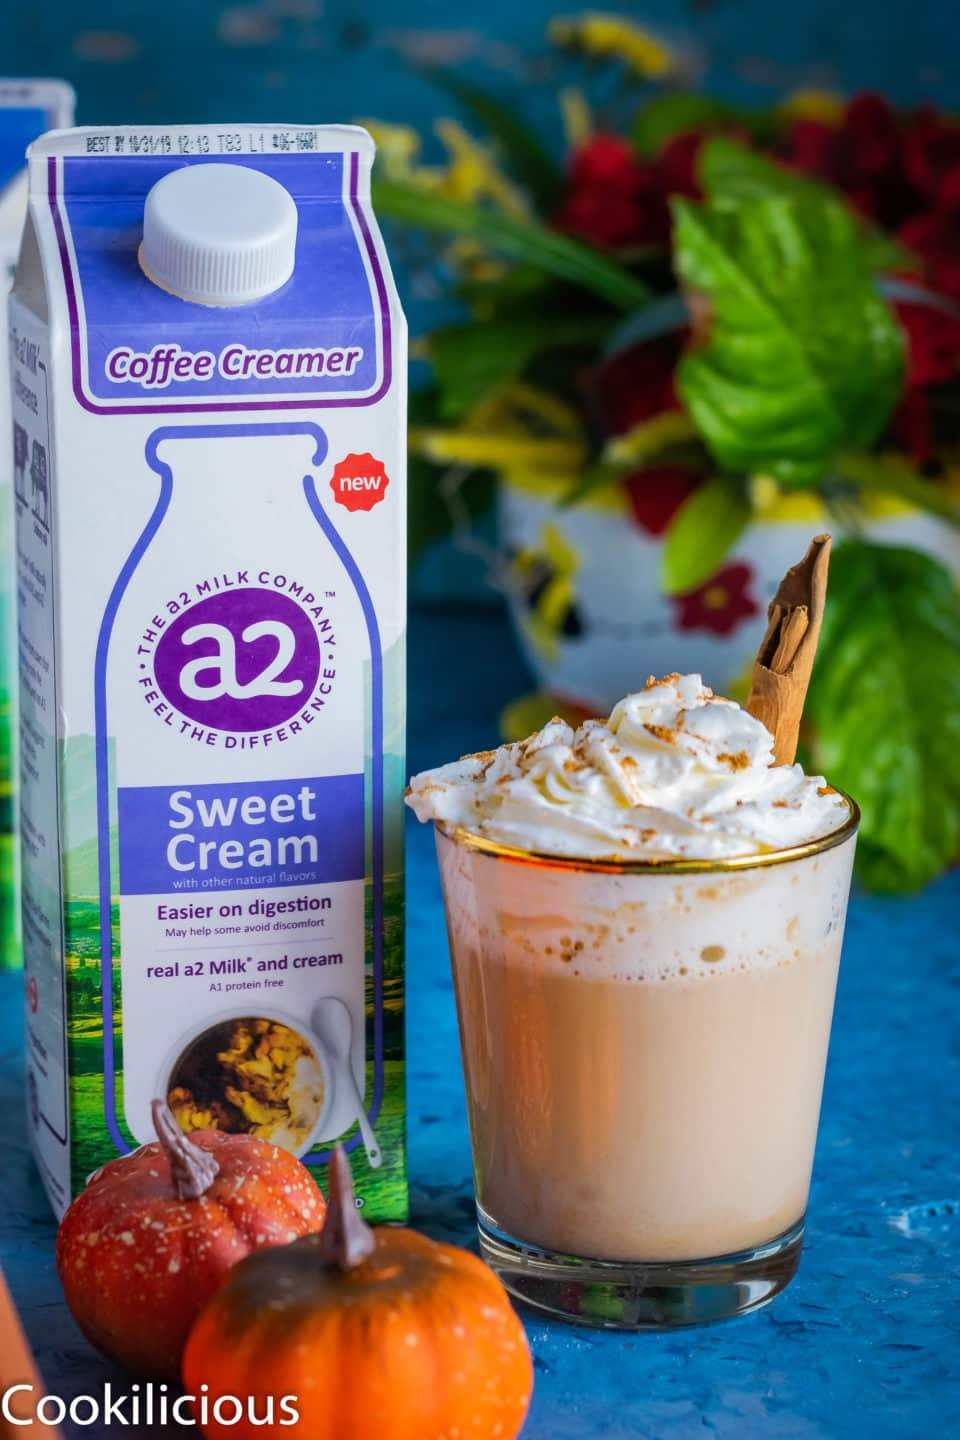 a glass of Spiced Coffee & Pumpkin Latte with an a2 milk carton next to it